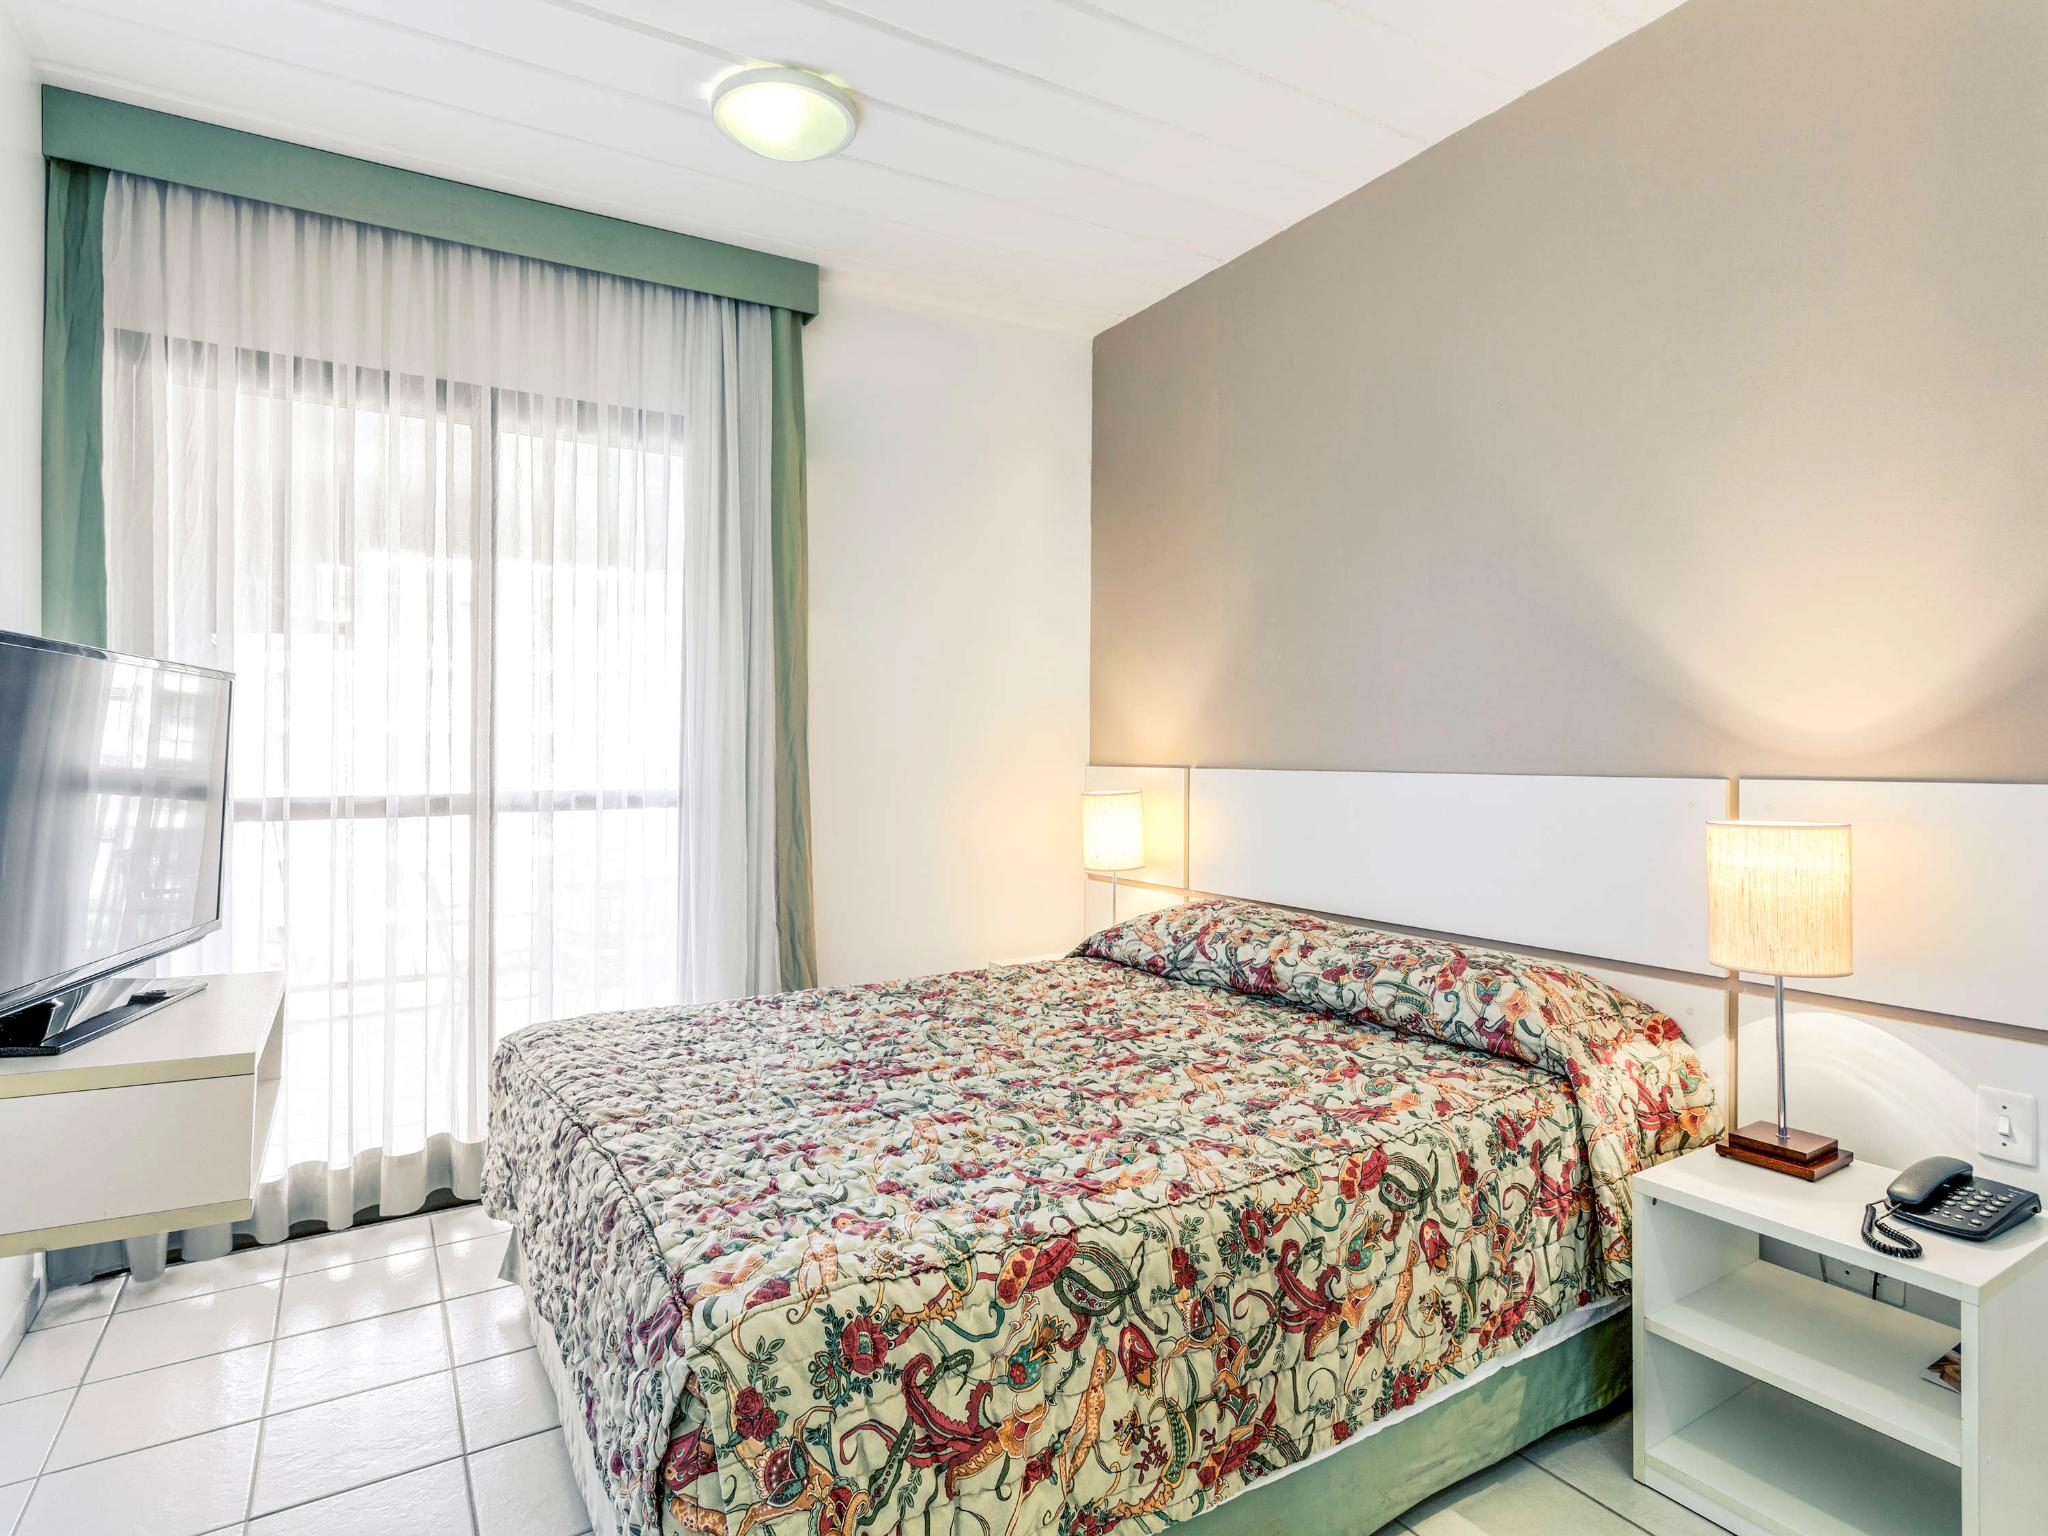 Apartment with double bed